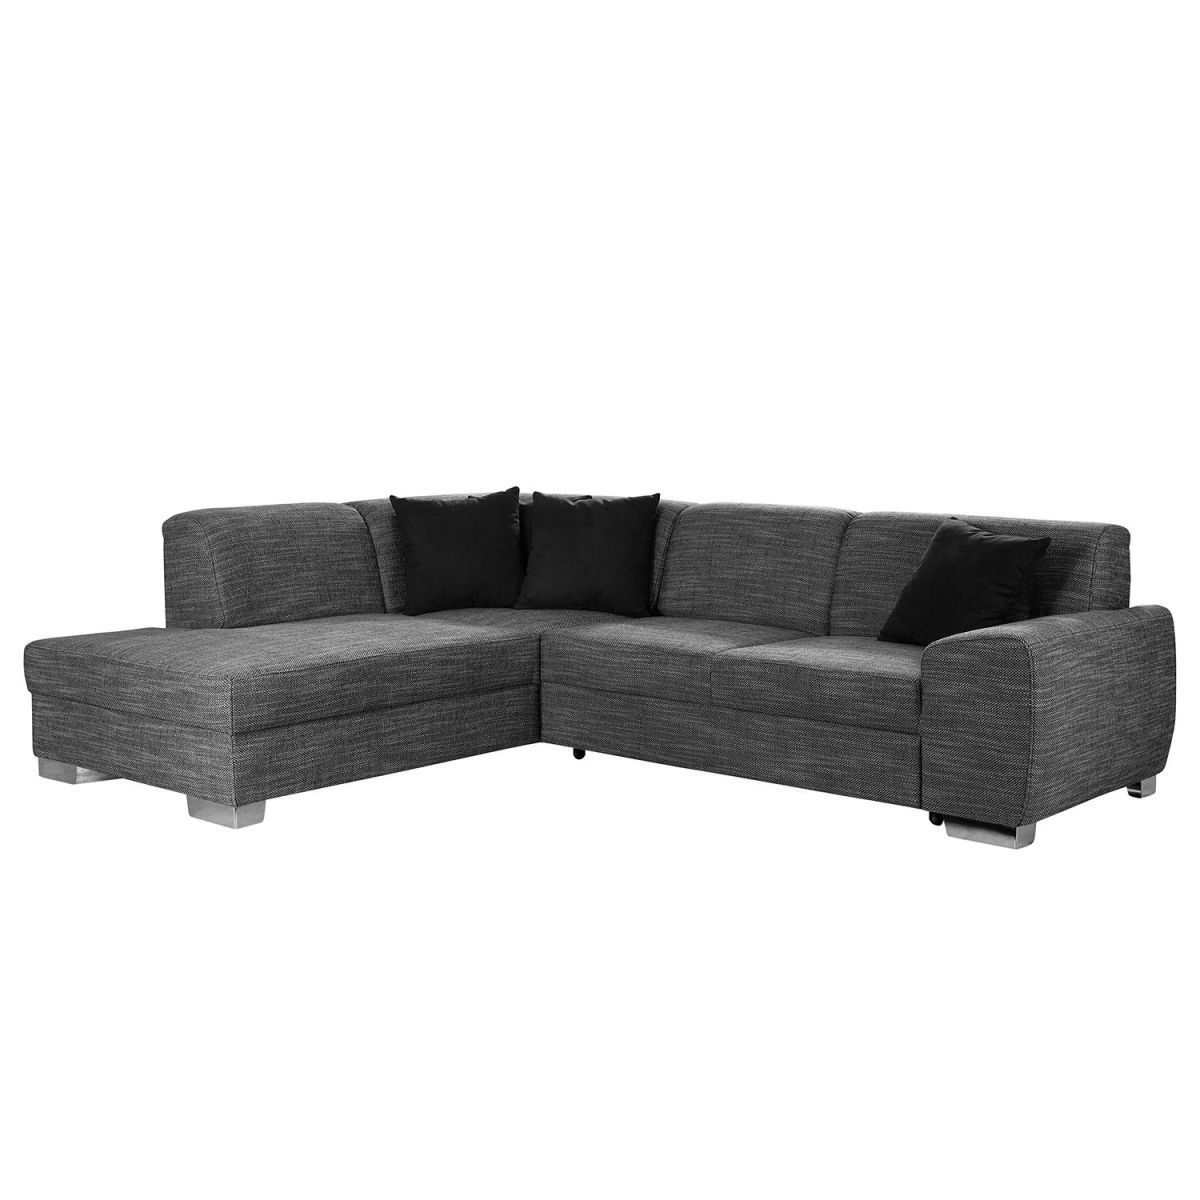 Ecksofa Avondi Pin By Ladendirekt On Sofas Couches Pinterest Sofa And Couch